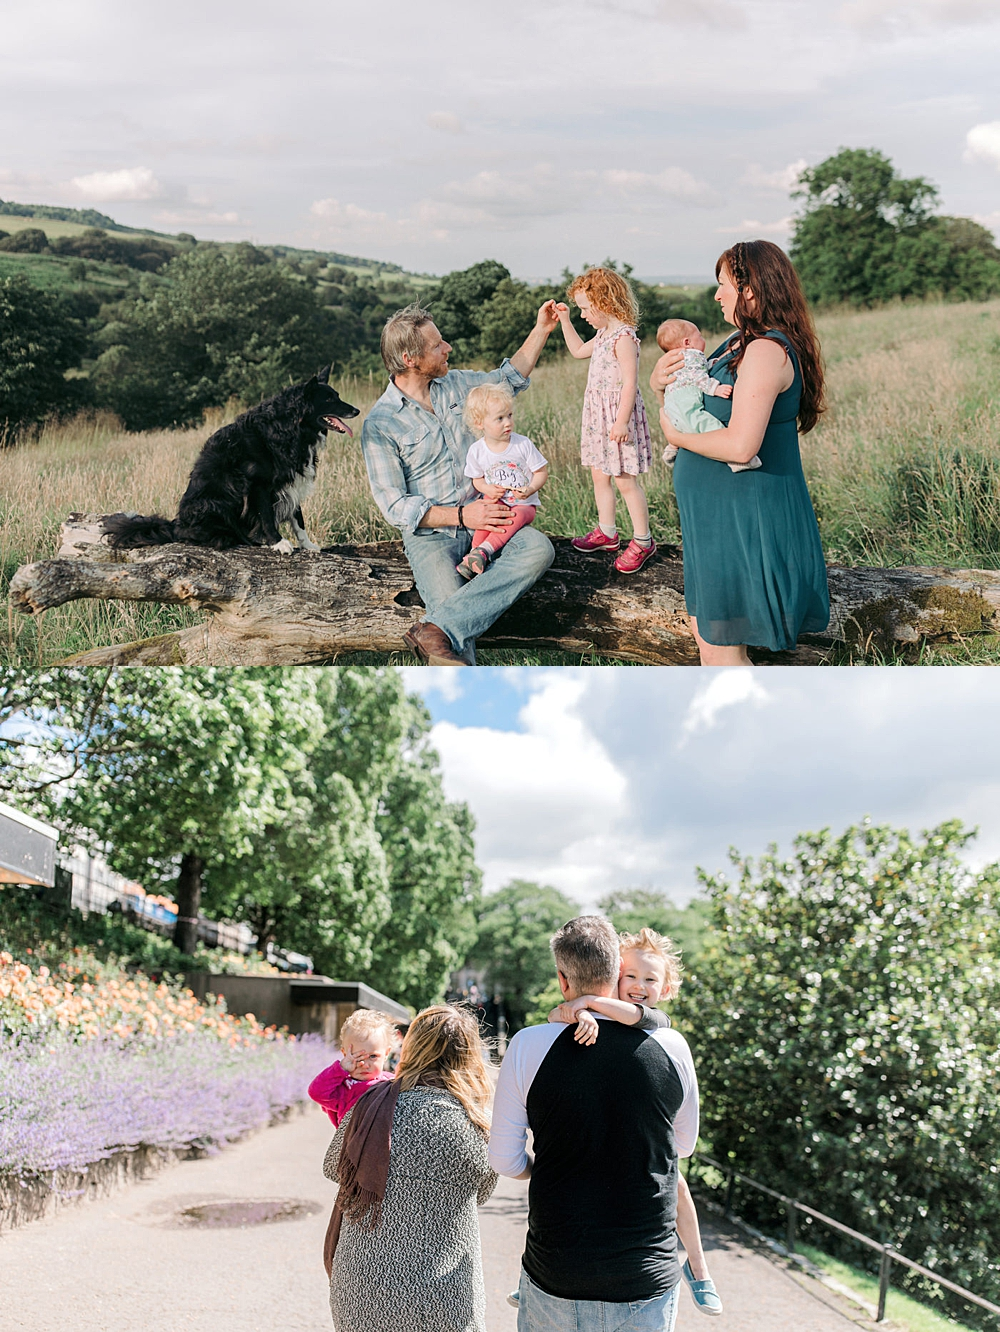 Family photographers Glasgow,Lifestyle Newborn photography Glasgow,Newborn Photography Glasgow,The Gibsons,creative family photography glasgow,family photography around Glasgow,family photos,glasgow baby and family photographers,